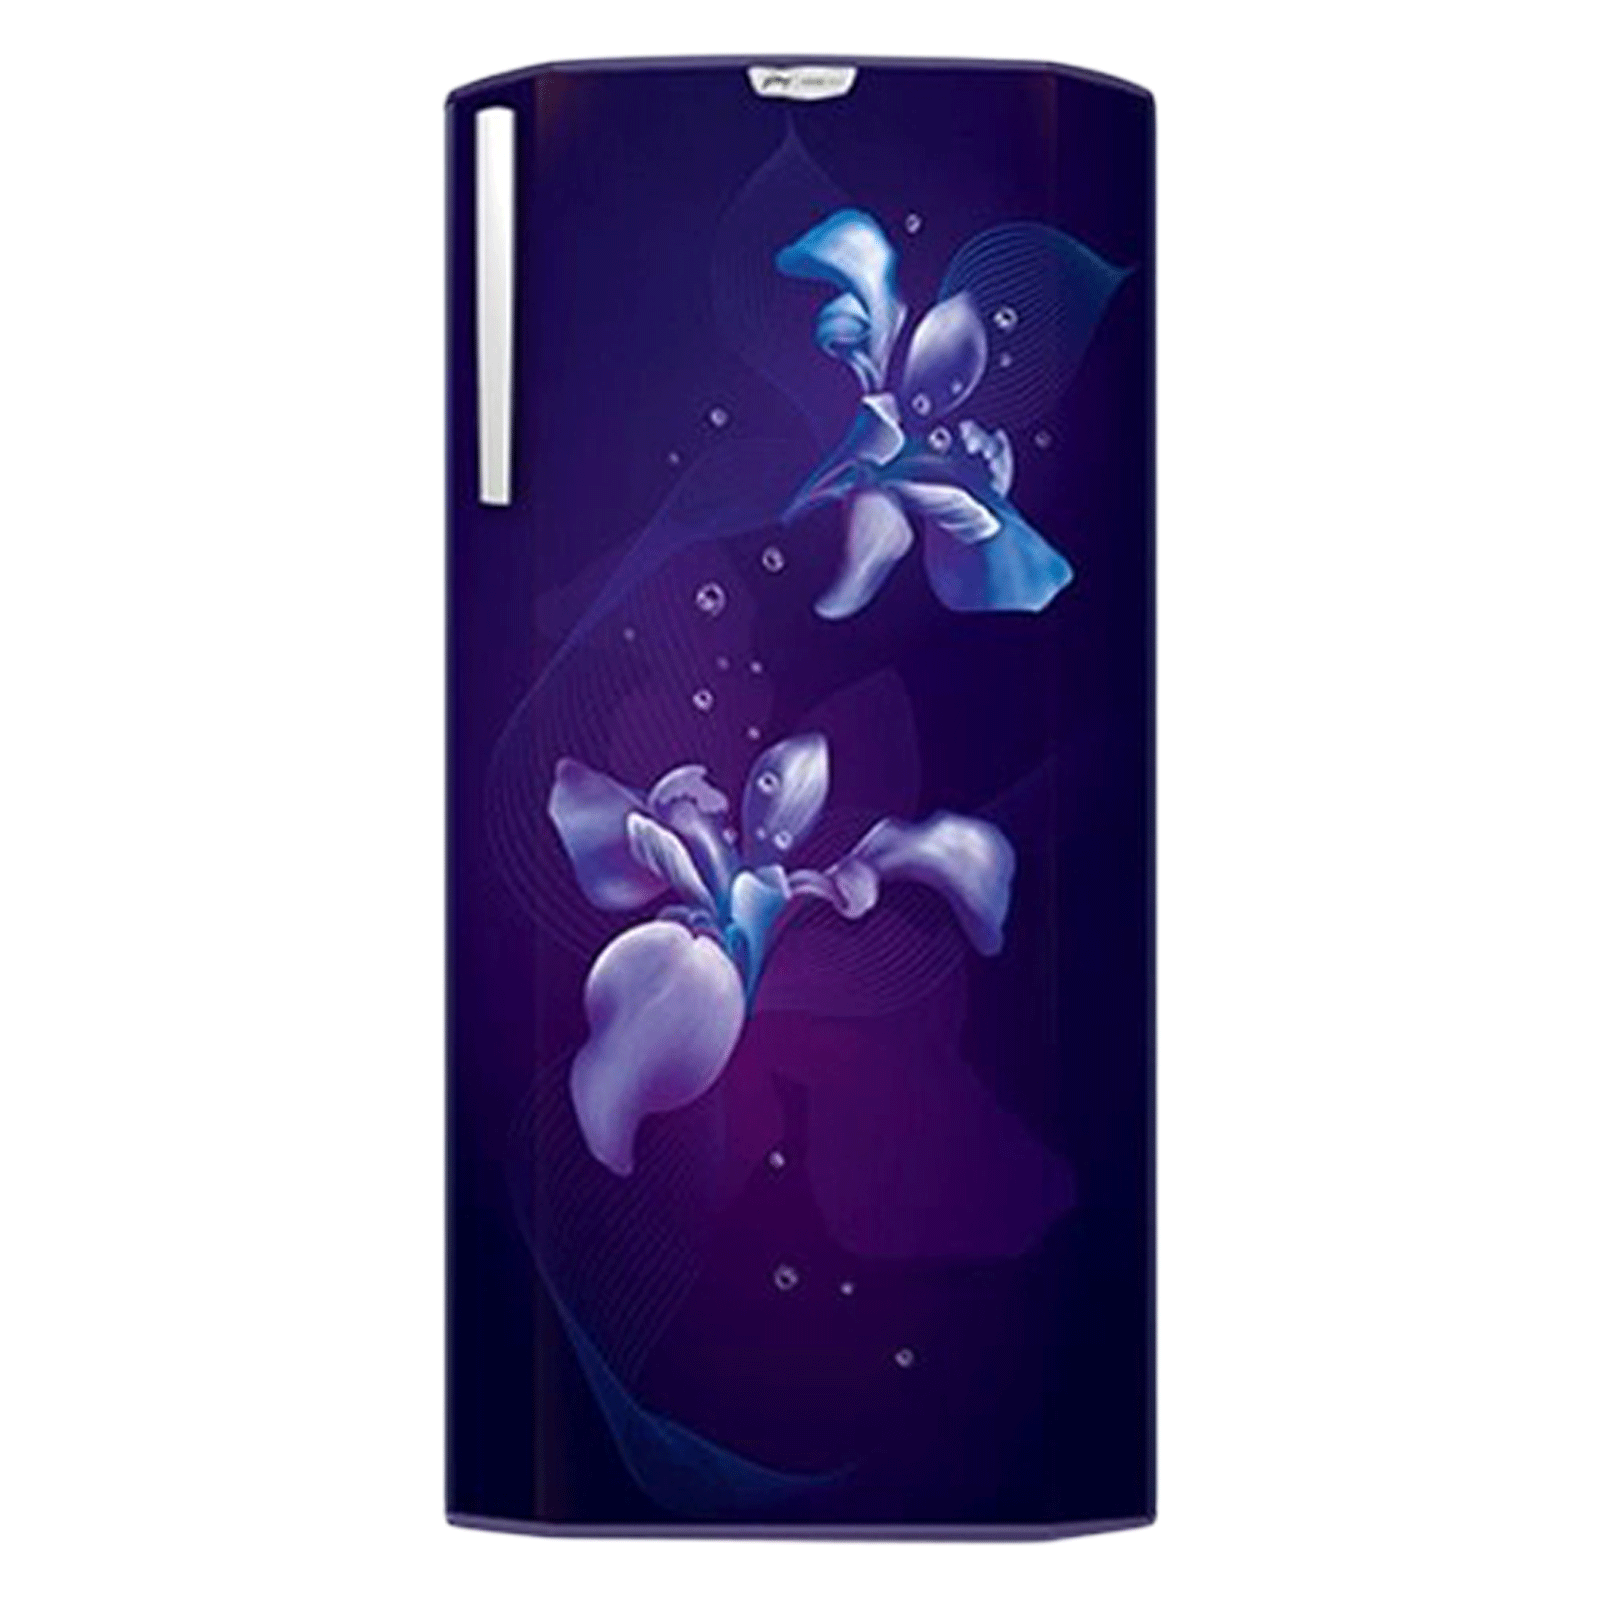 Godrej 192 Litres 3 Star Direct Cool Single Door Refrigerator (Largest Bottle Space, RD Edge Neo 207C 33 THF OX BL, Oxy Blue)_1